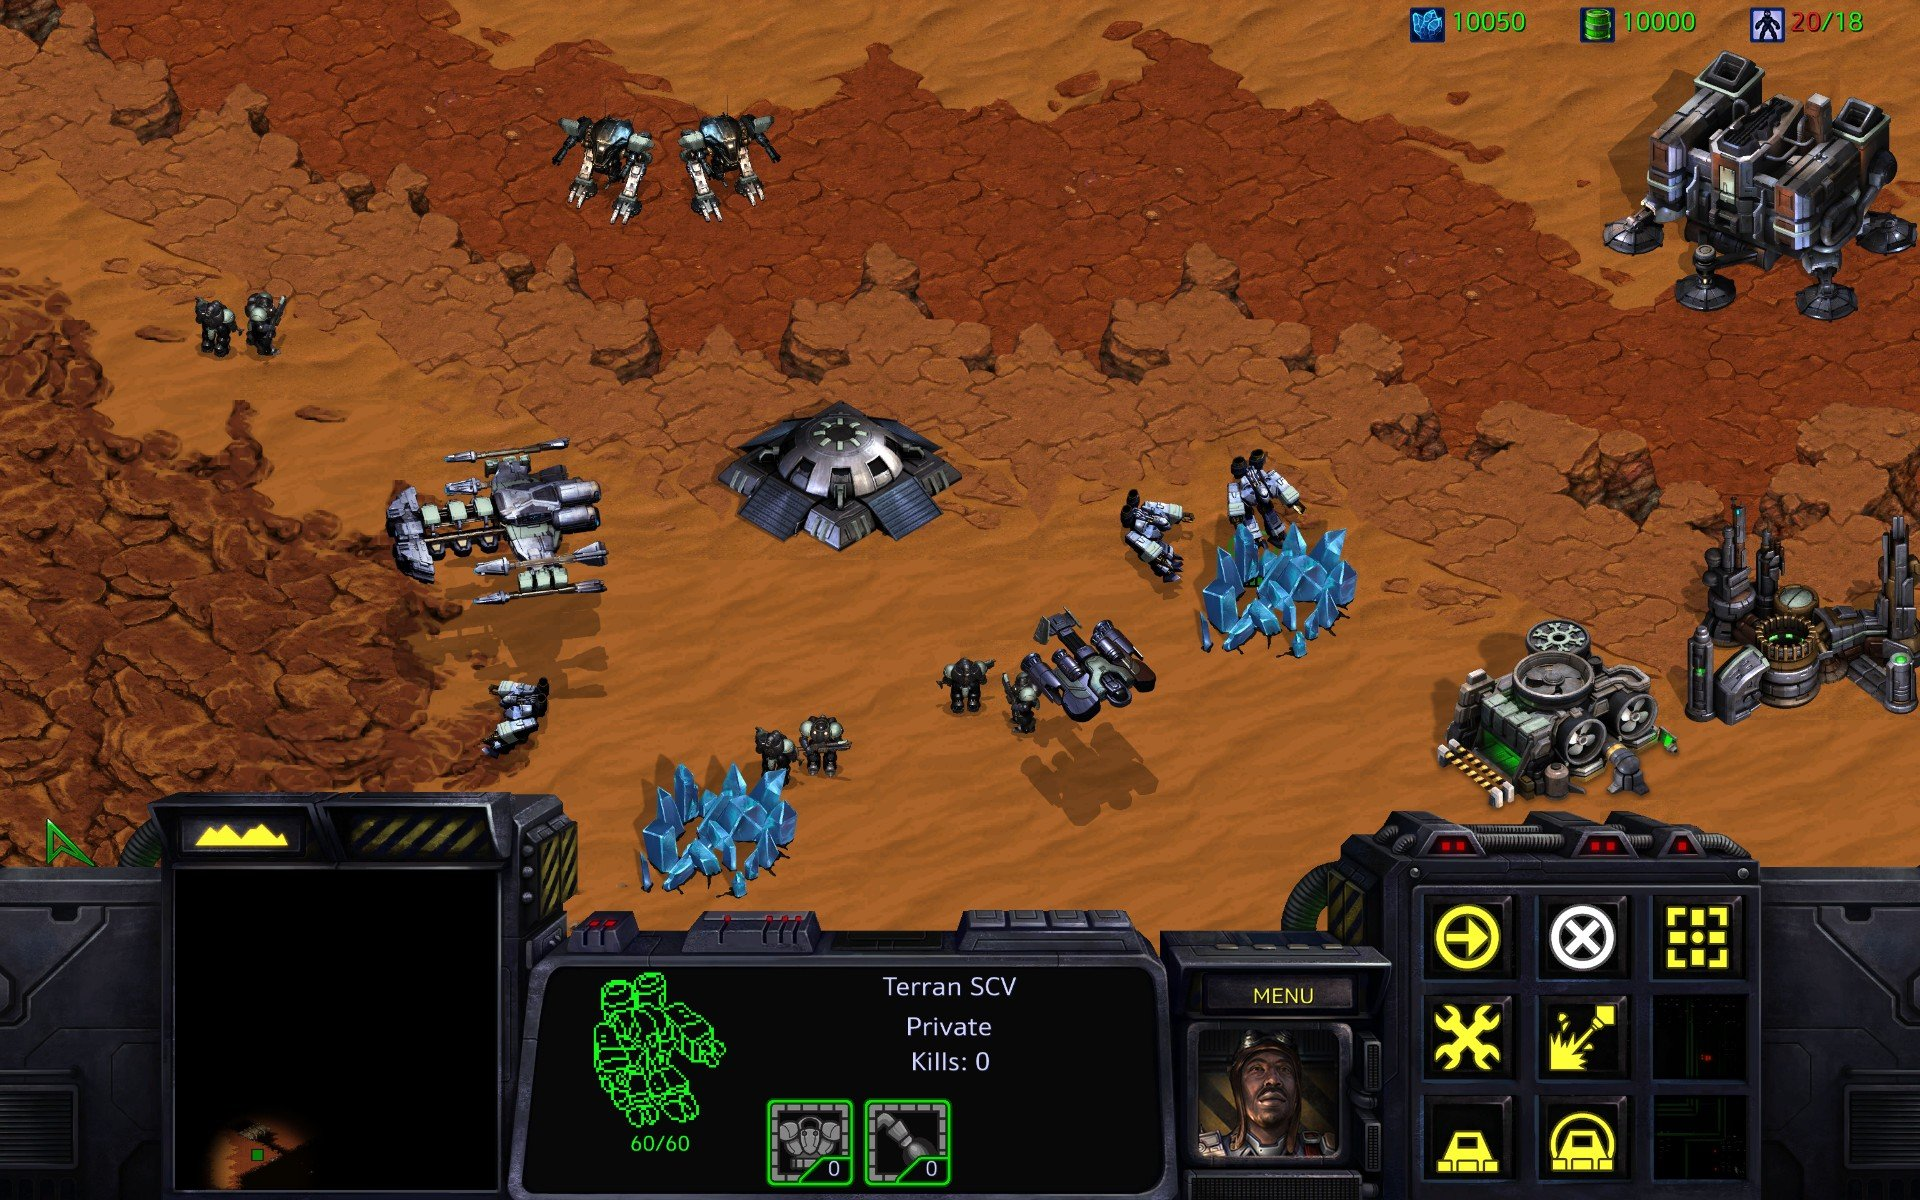 Starcraft-Remastered-2017-Screenshot-02-pc-games